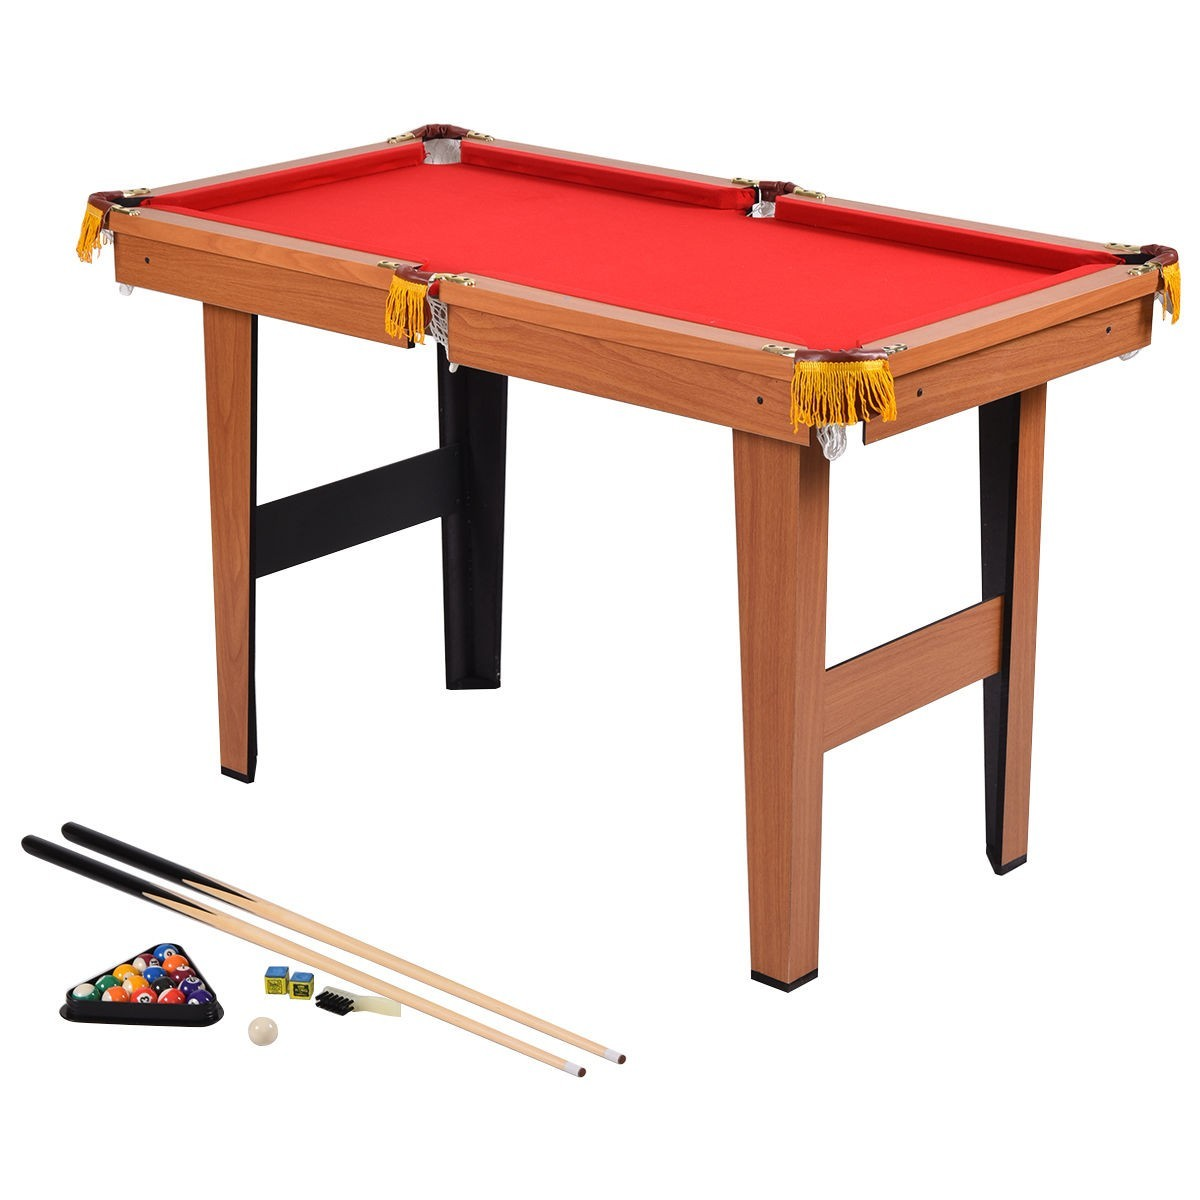 48 Mini Table Top Pool Table Game Billiard Set Cues Balls Gift Indoor Sports